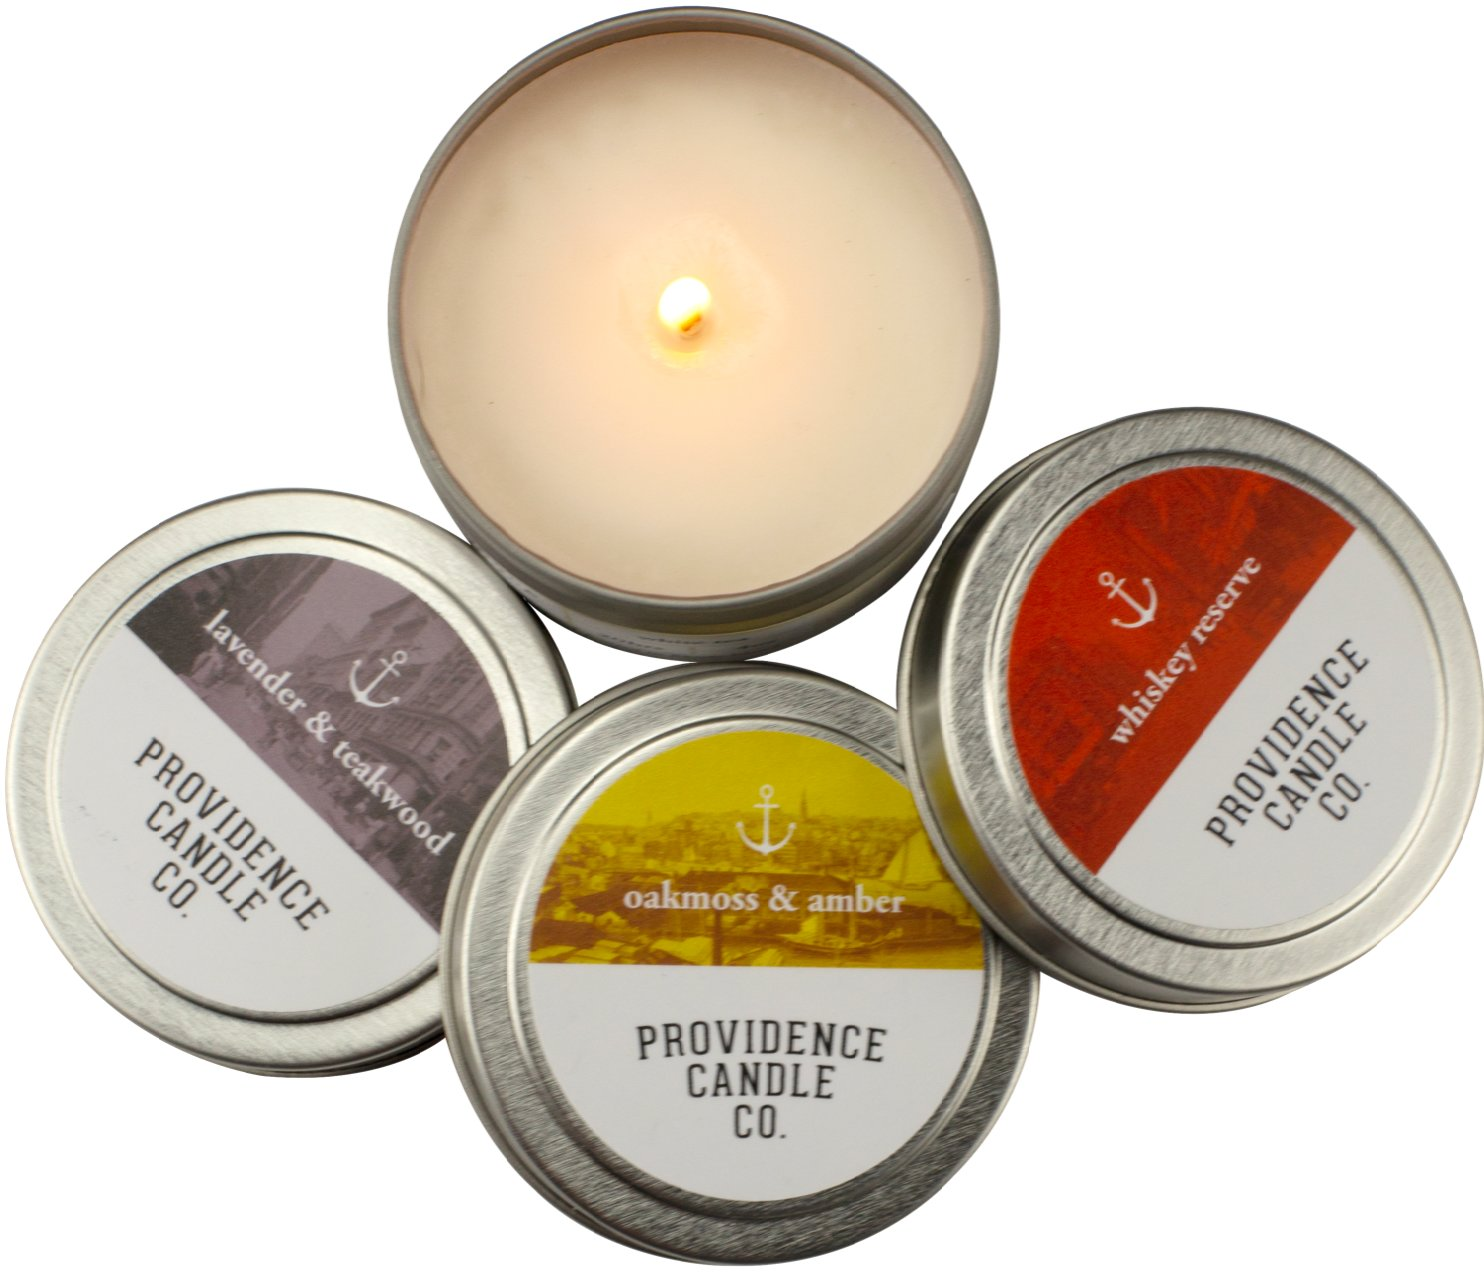 Providence Candle Company: Pure soy candles, sustainably sourced and blended with essential oils. 4 oz tin, $7.